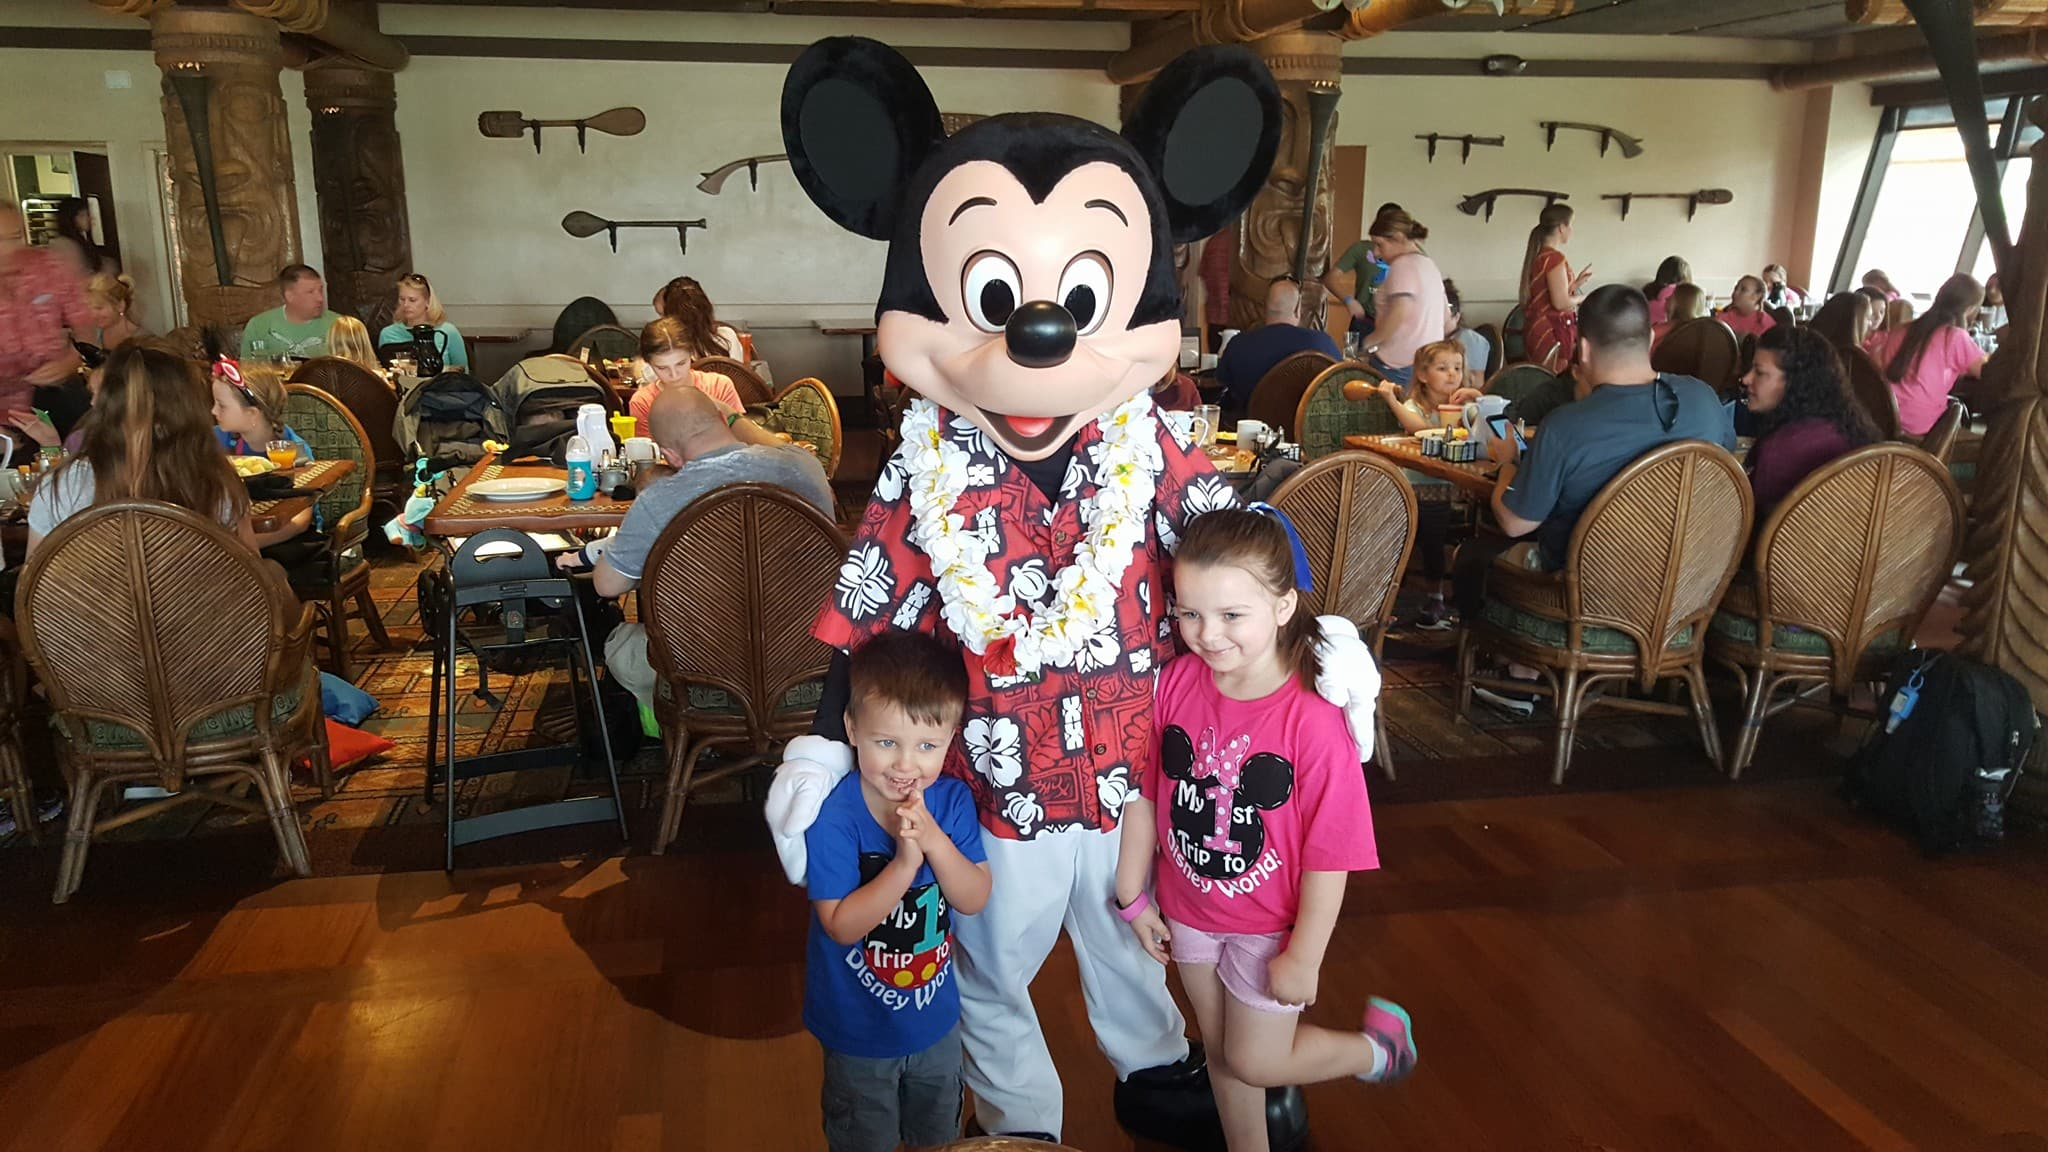 Is Walt Disney World toddler friendly? Check out if your toddler is a good age to travel to the Happiest Place on Earth.